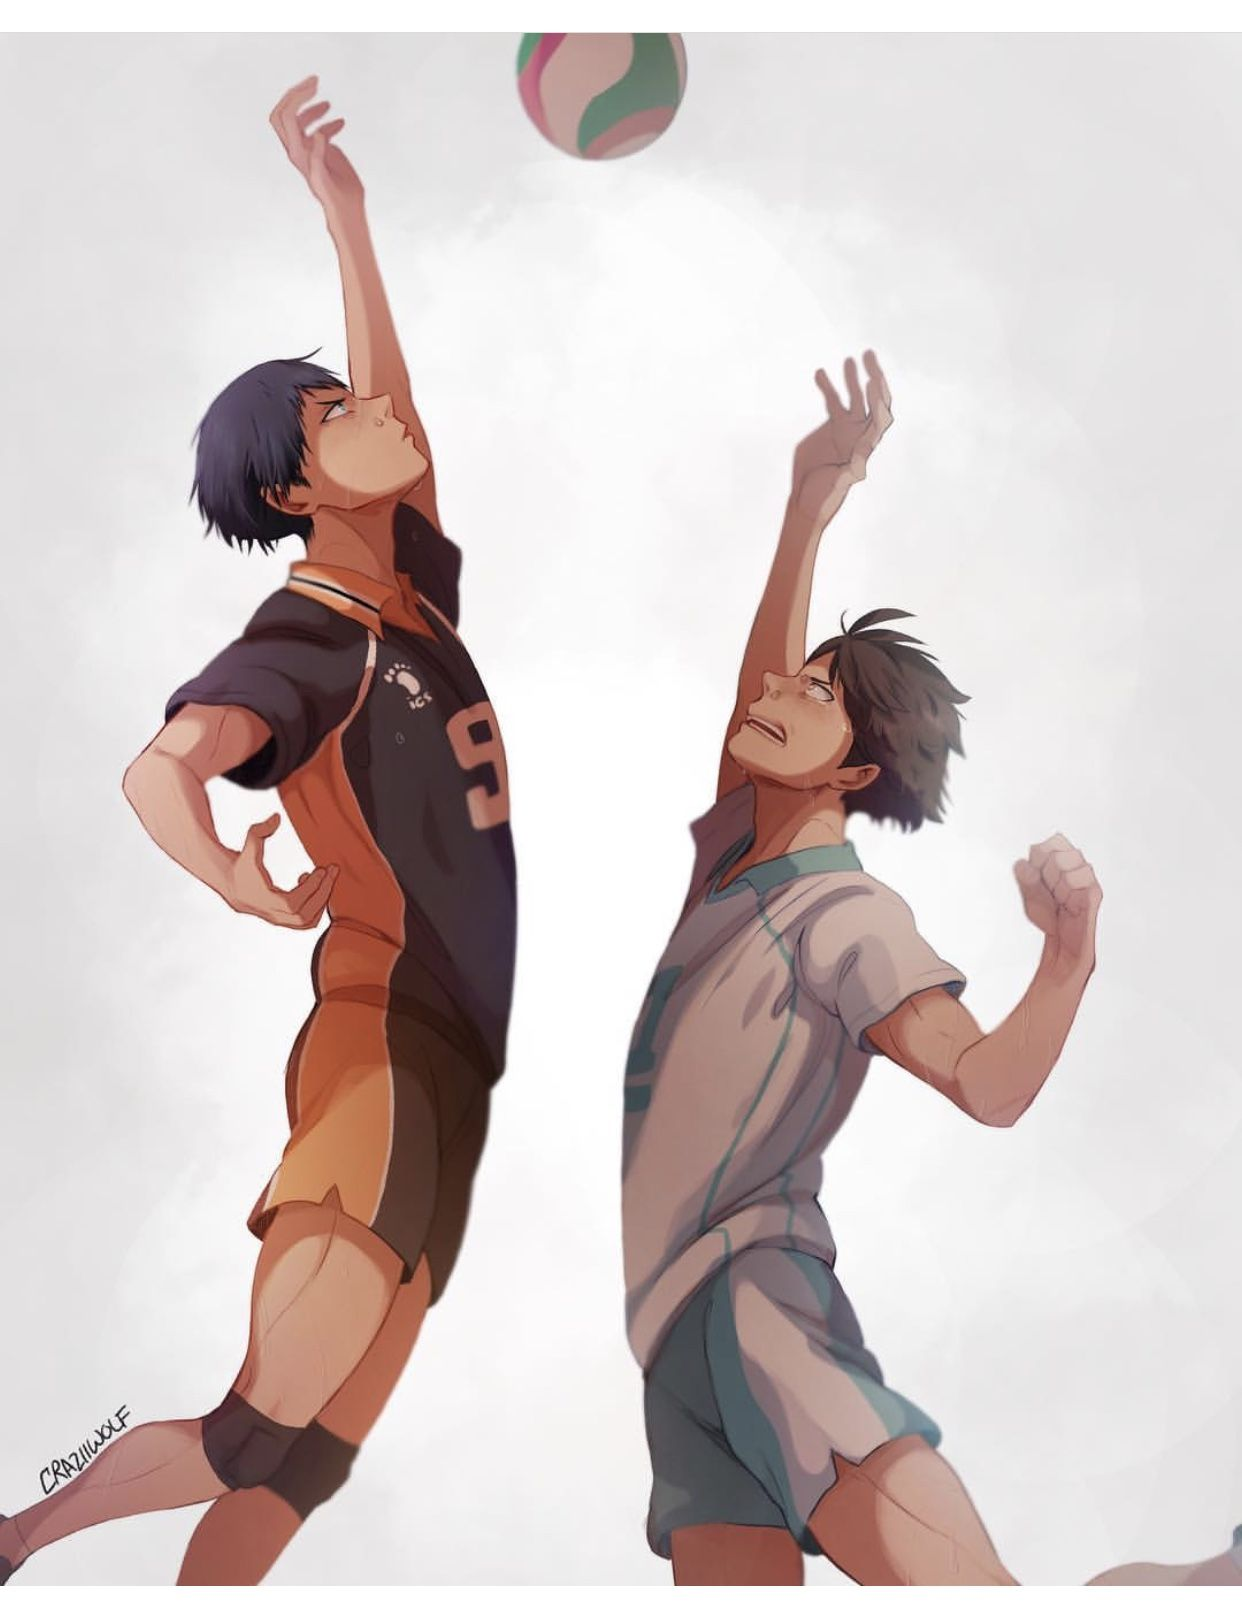 Pin By Lauren Bies On Kageyama In 2020 Character Kageyama Fictional Characters